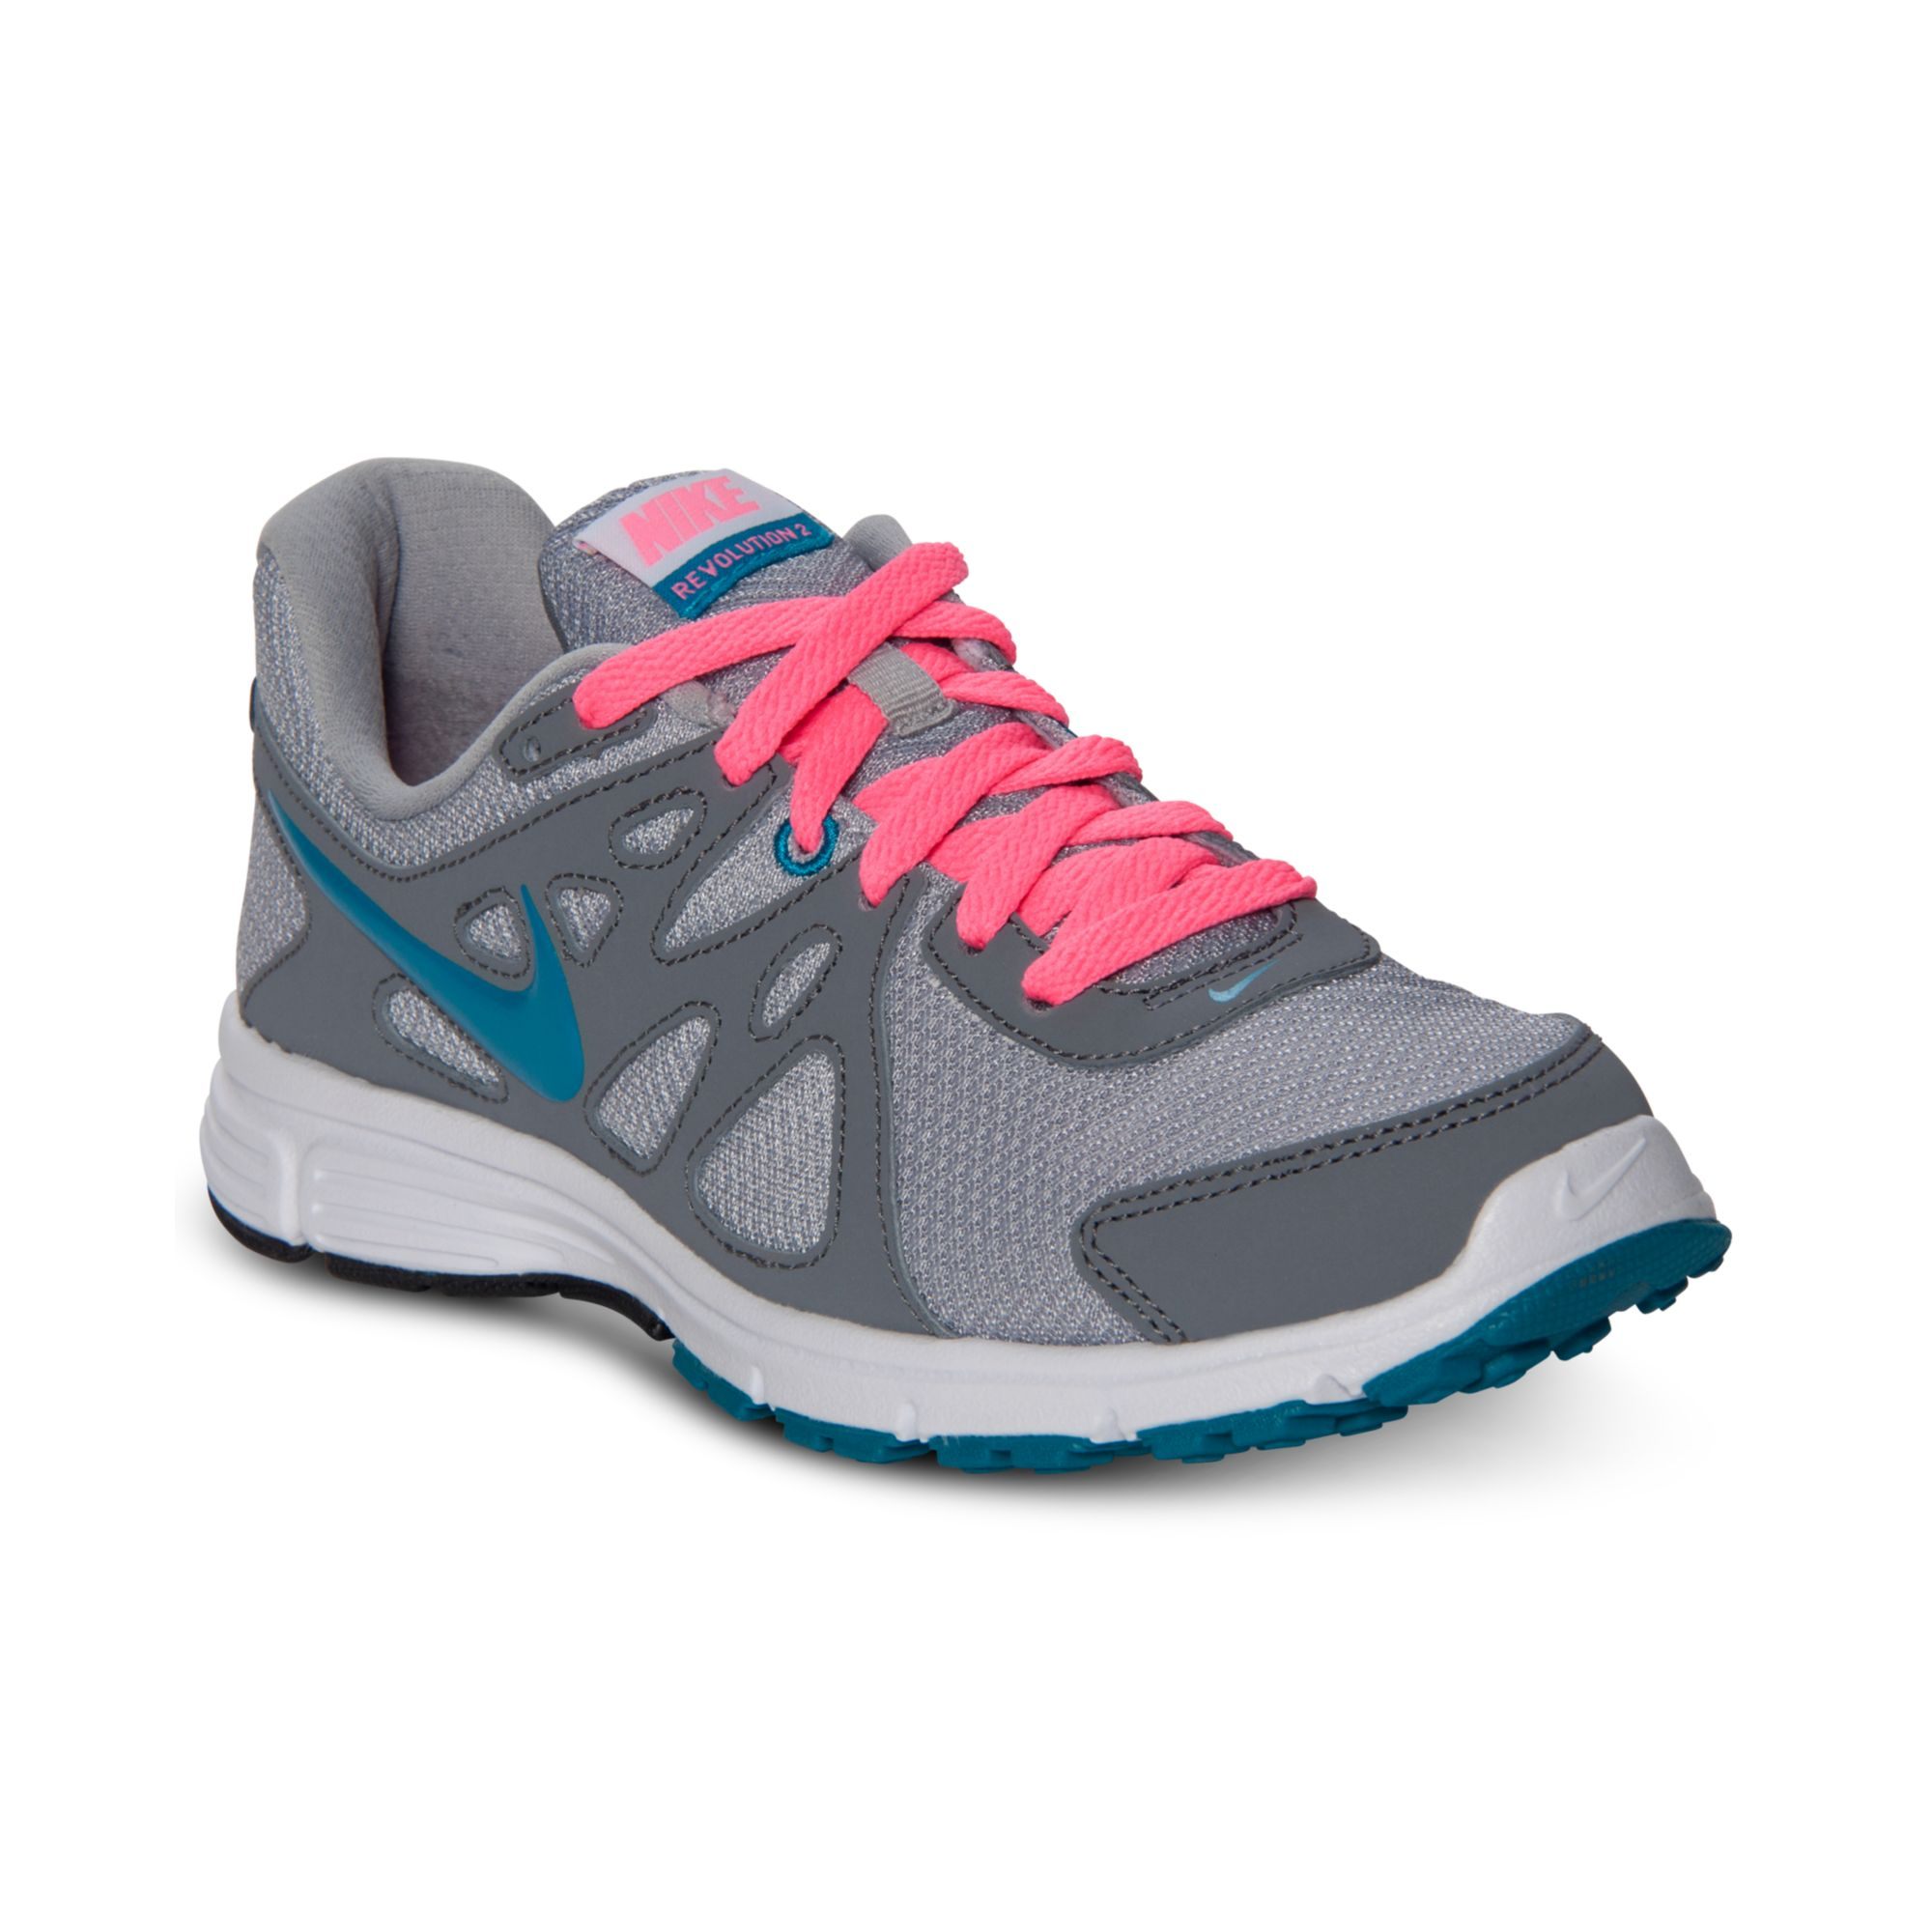 nike revolution 2 running sneakers in gray wolf grey cool. Black Bedroom Furniture Sets. Home Design Ideas